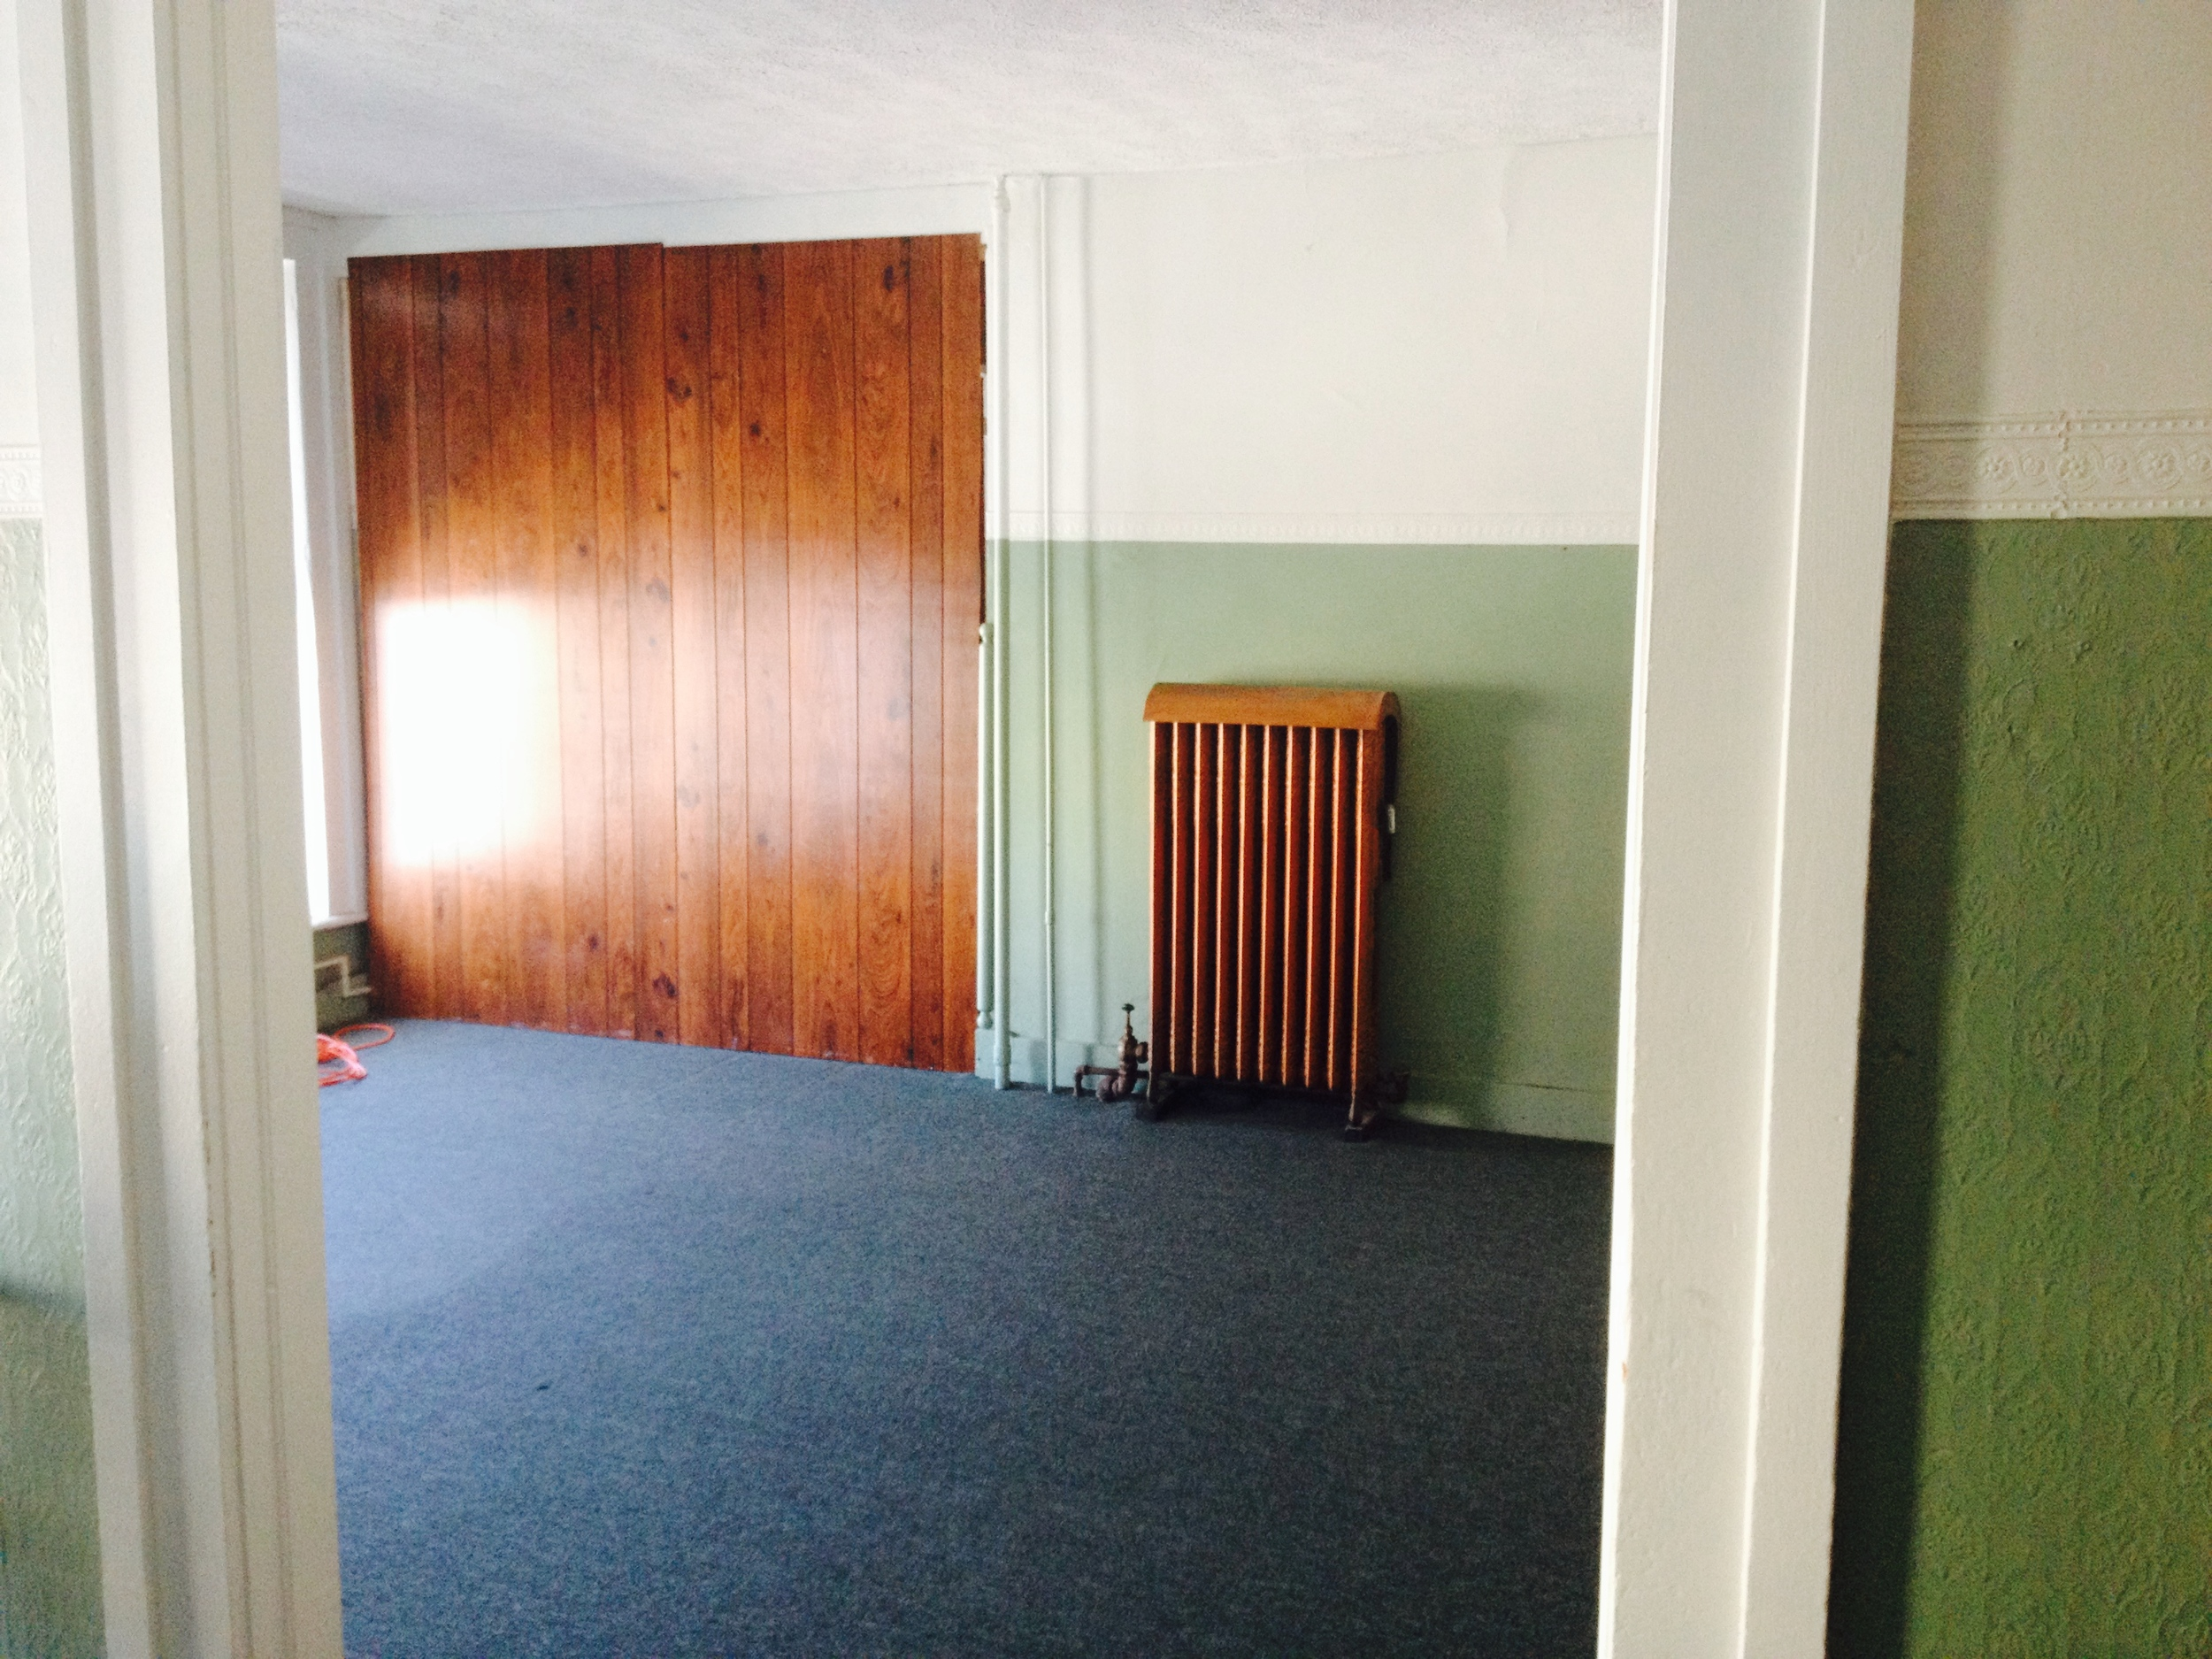 empty room for storing stuff/changing